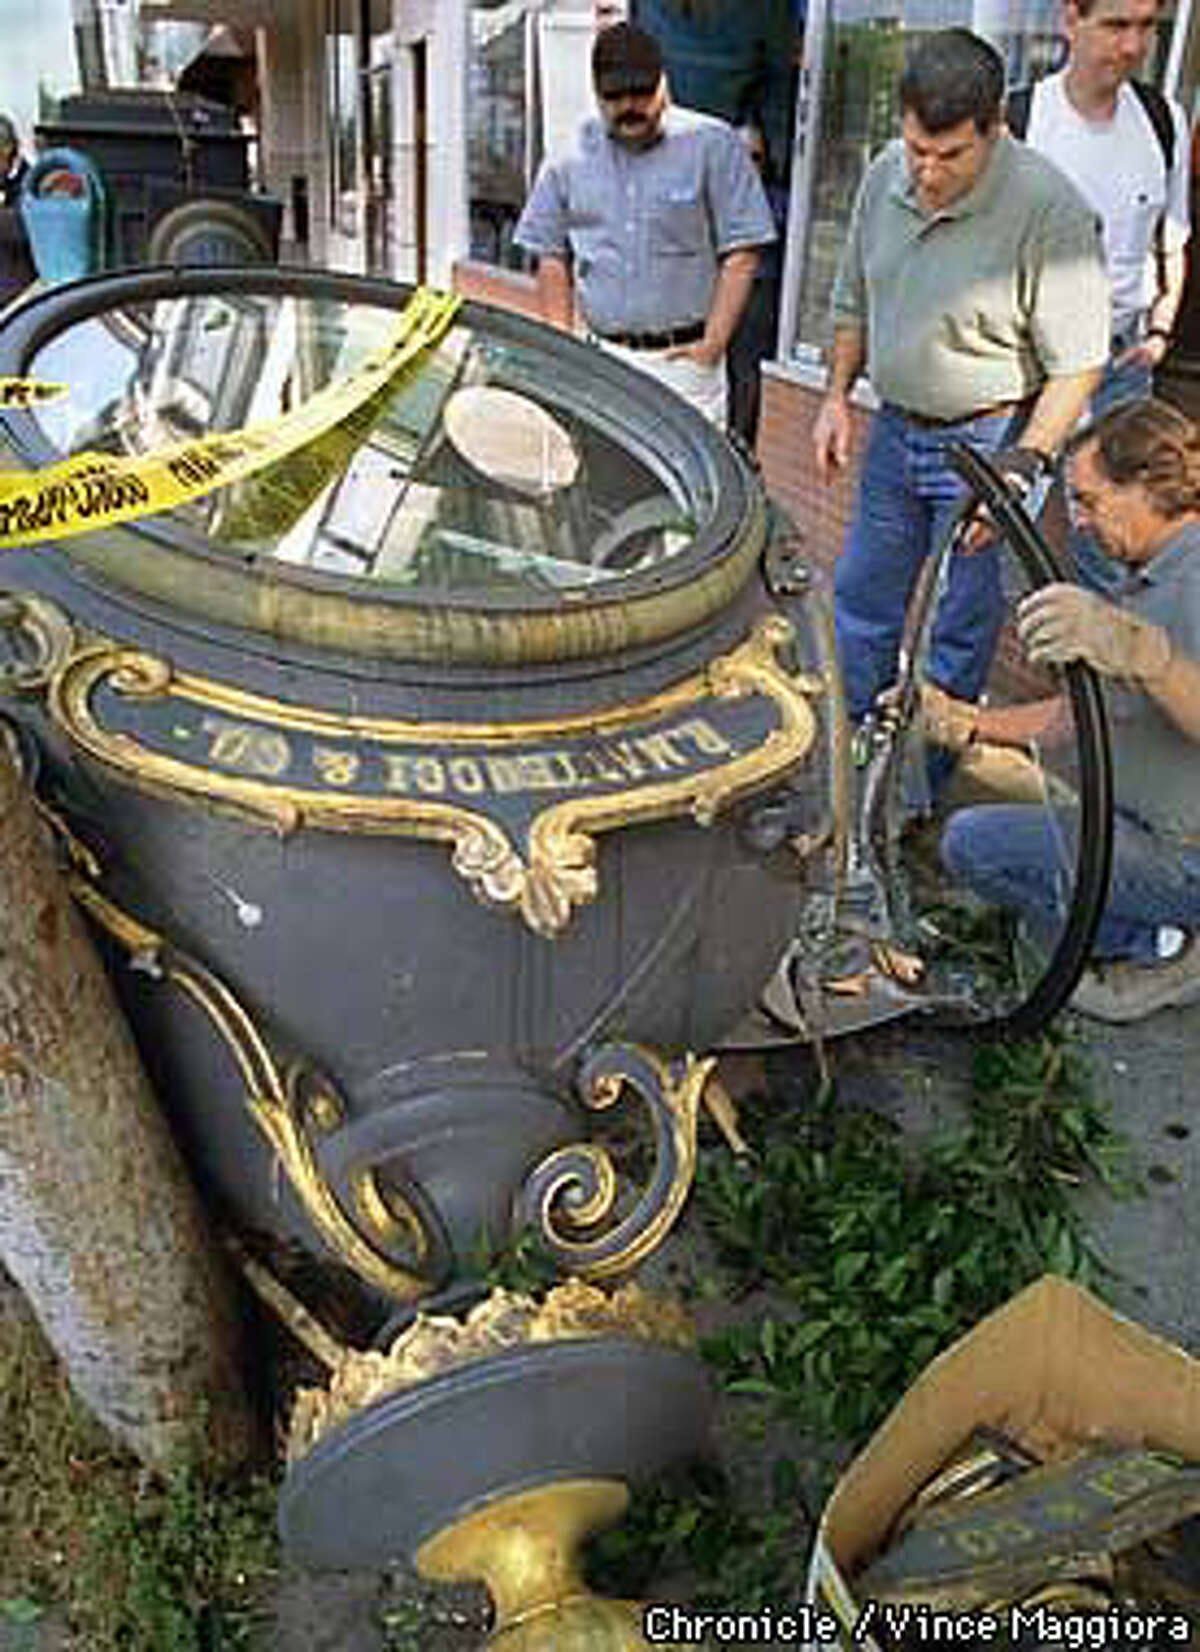 People who rushed to the scene of the toppled street clock on Columbus Avenue picked up some of the many broken parts. Chronicle Photo by Vince Maggoria